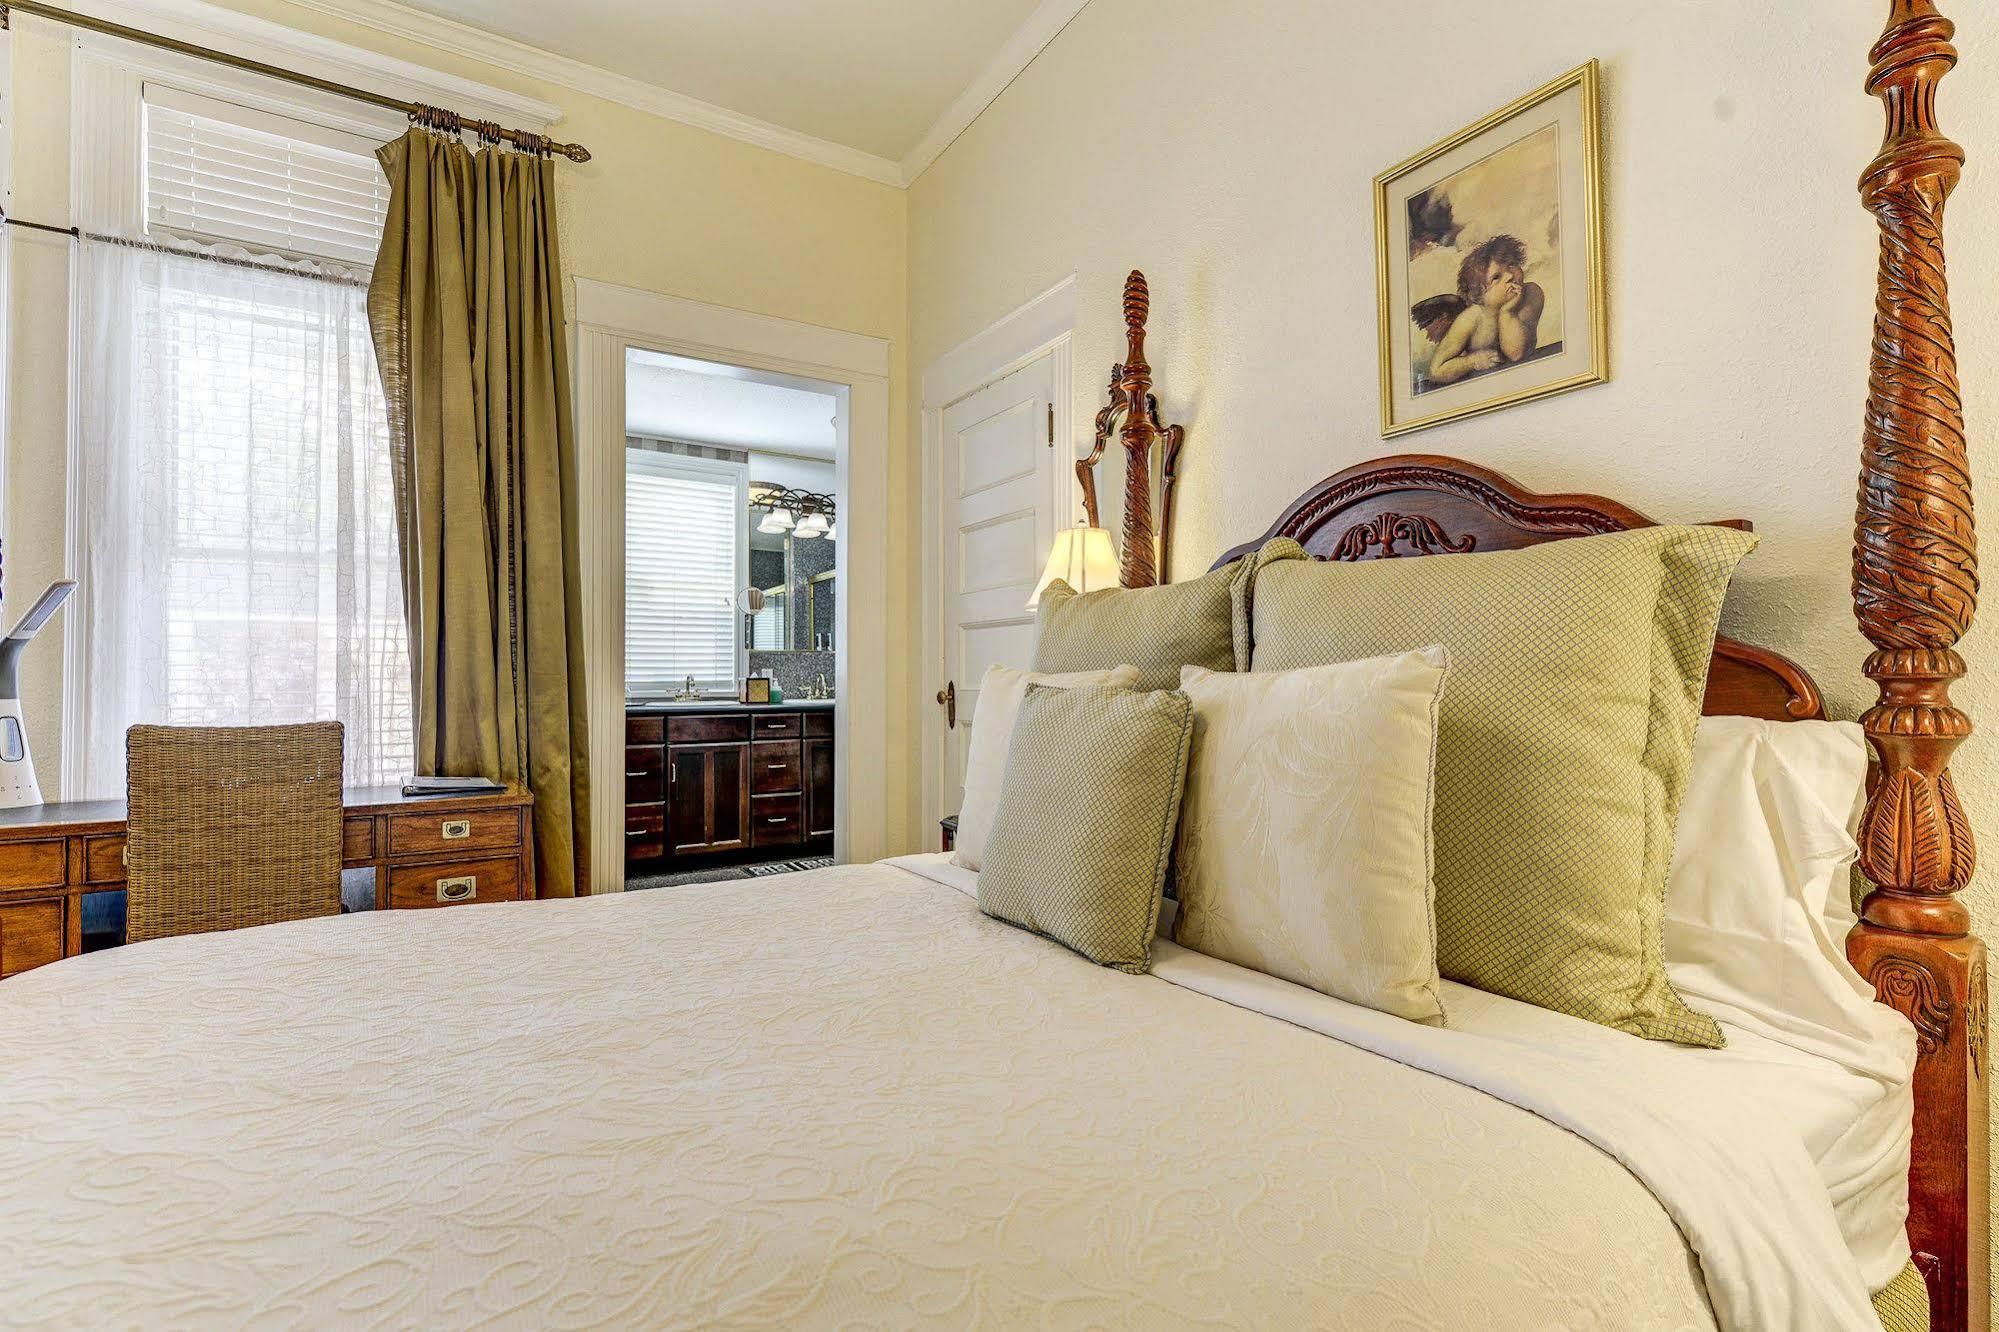 The St Marys Inn Bed and Breakfast